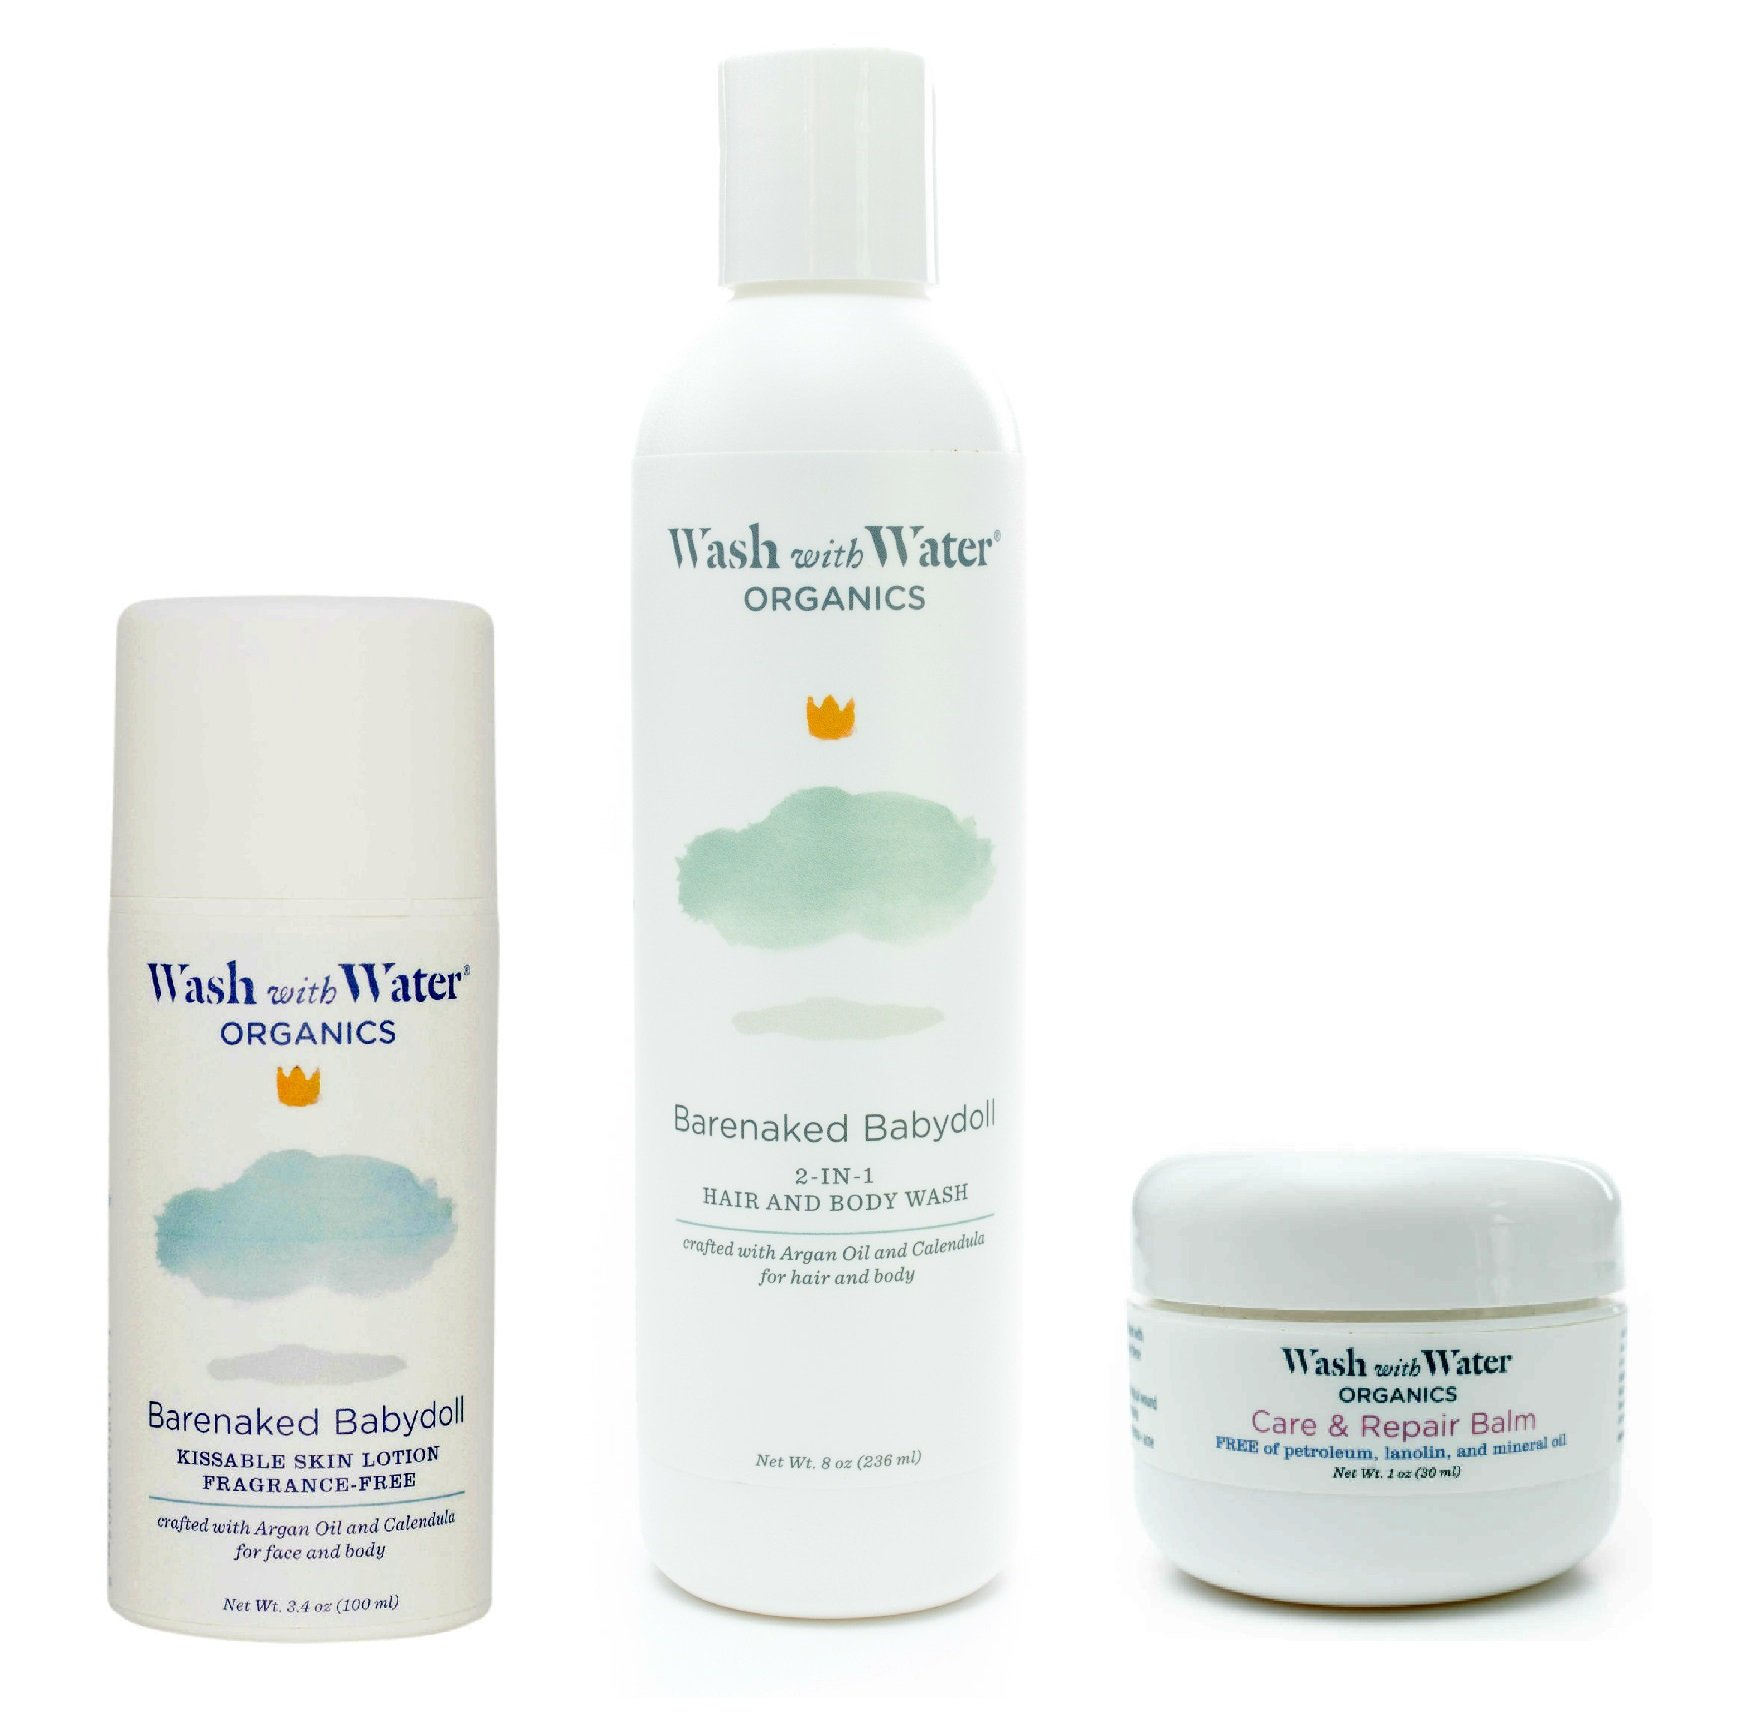 Wash with Water All Natural Organic Skin Care Bundle for Eczema, Cradle Cap + Sensitive Skin - 8oz Unscented Shampoo + Body Wash, 1oz Care and Repair Balm + 3.4oz Unscented Lotion